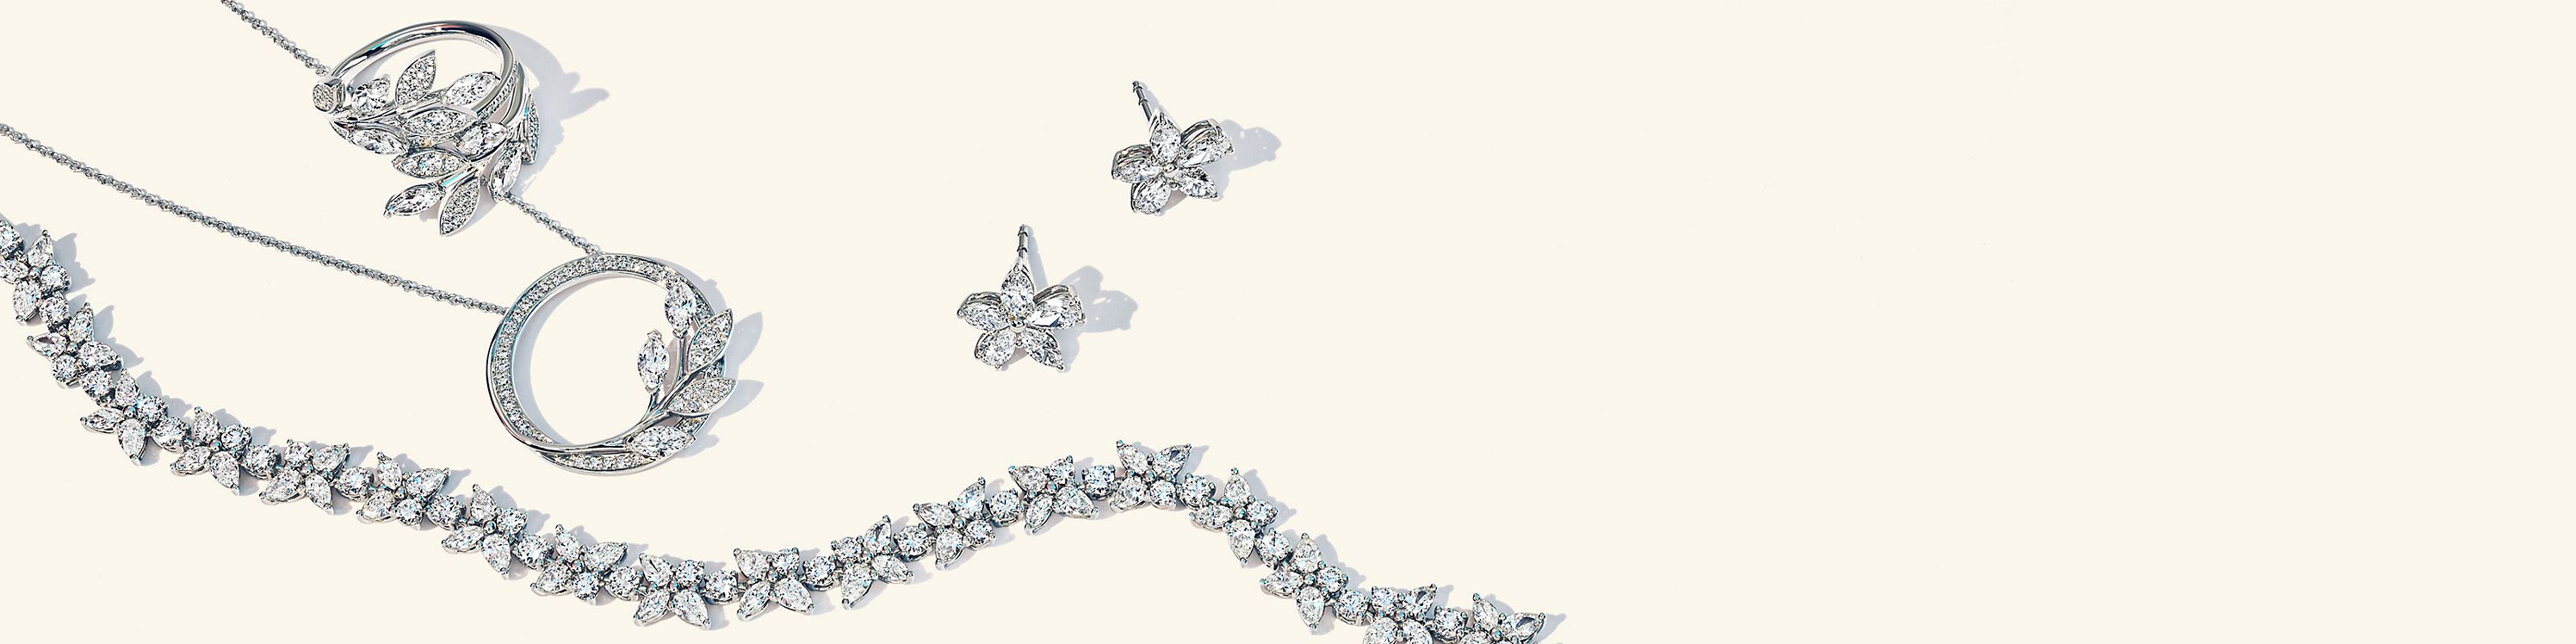 Tiffany Victoria® Jewellery